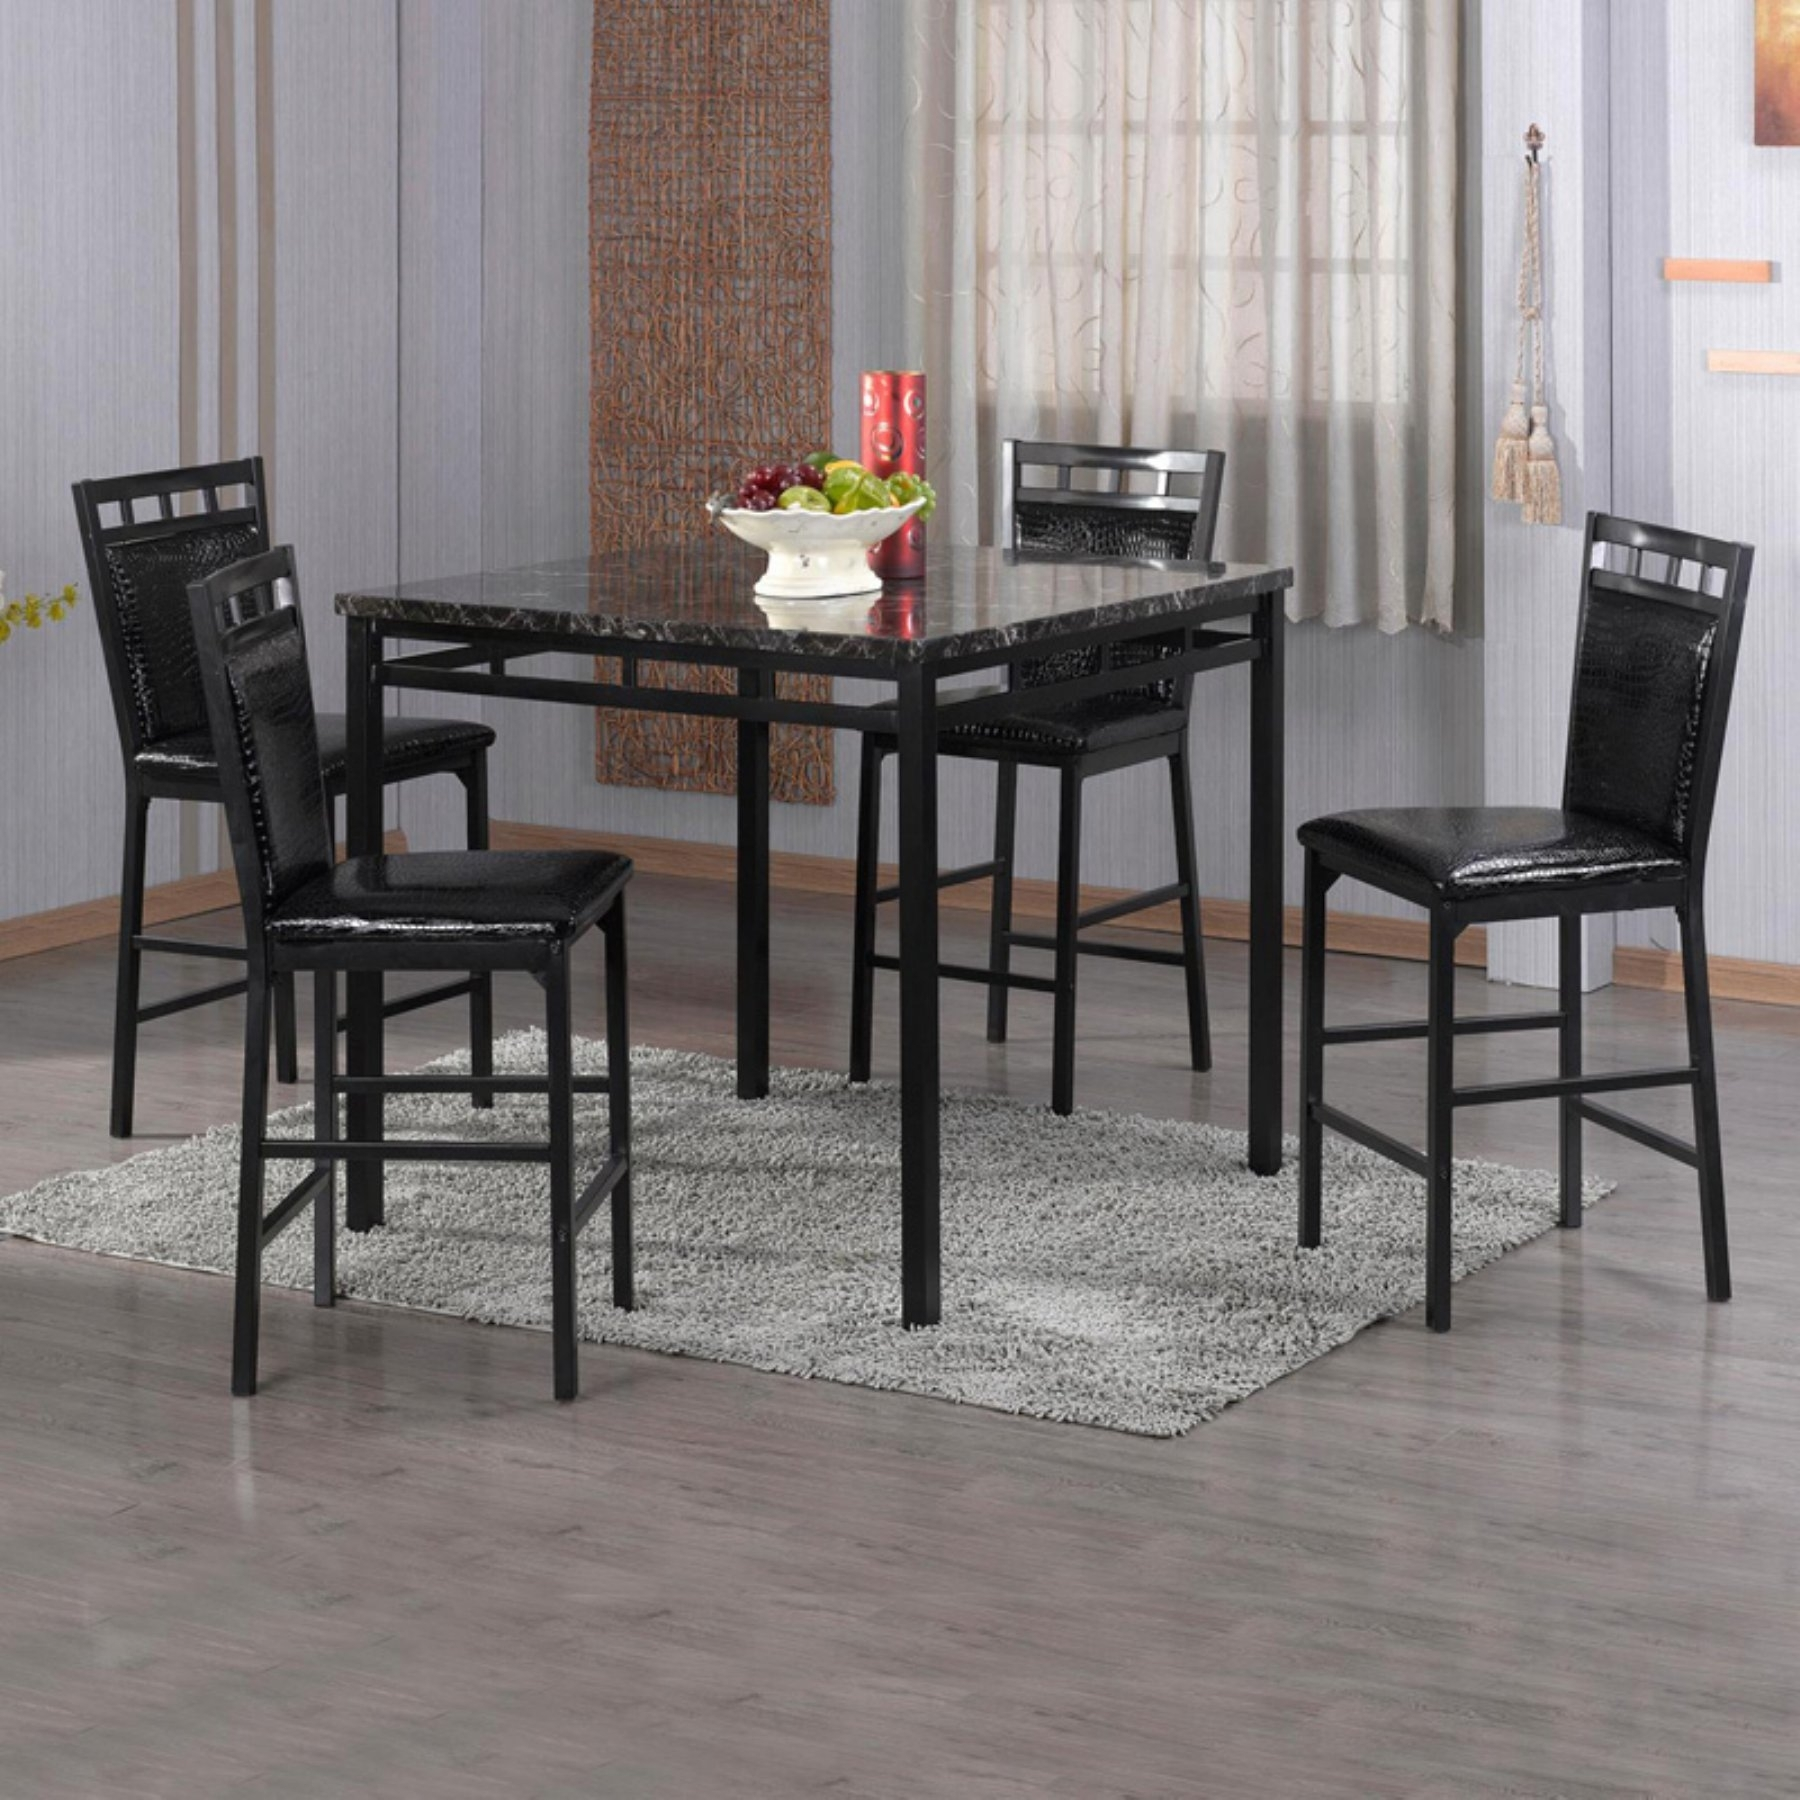 Home Source Industries 5 Piece Counter Height Dining Table Set In In Recent Valencia 5 Piece Round Dining Sets With Uph Seat Side Chairs (Image 13 of 20)